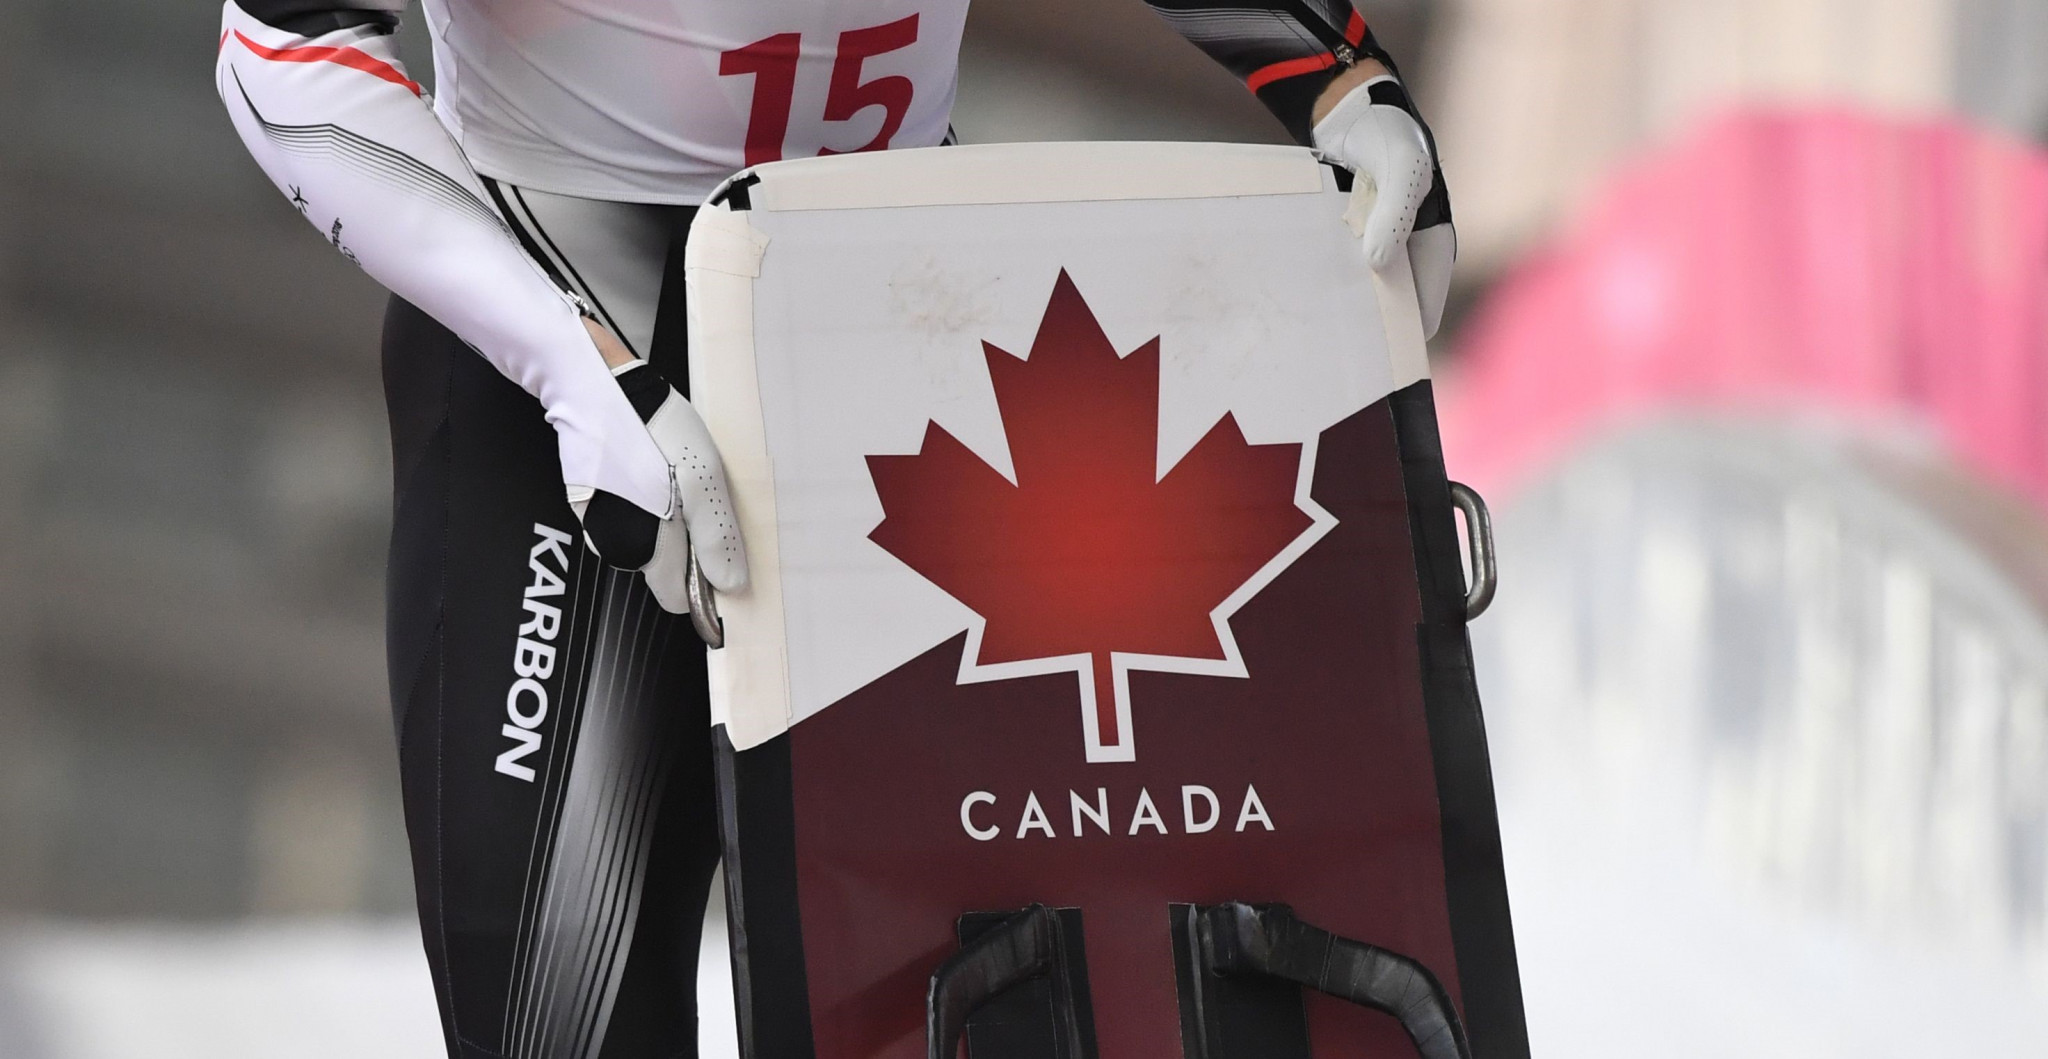 Staudinger to step down as head coach of Canadian luge team after Beijing 2022